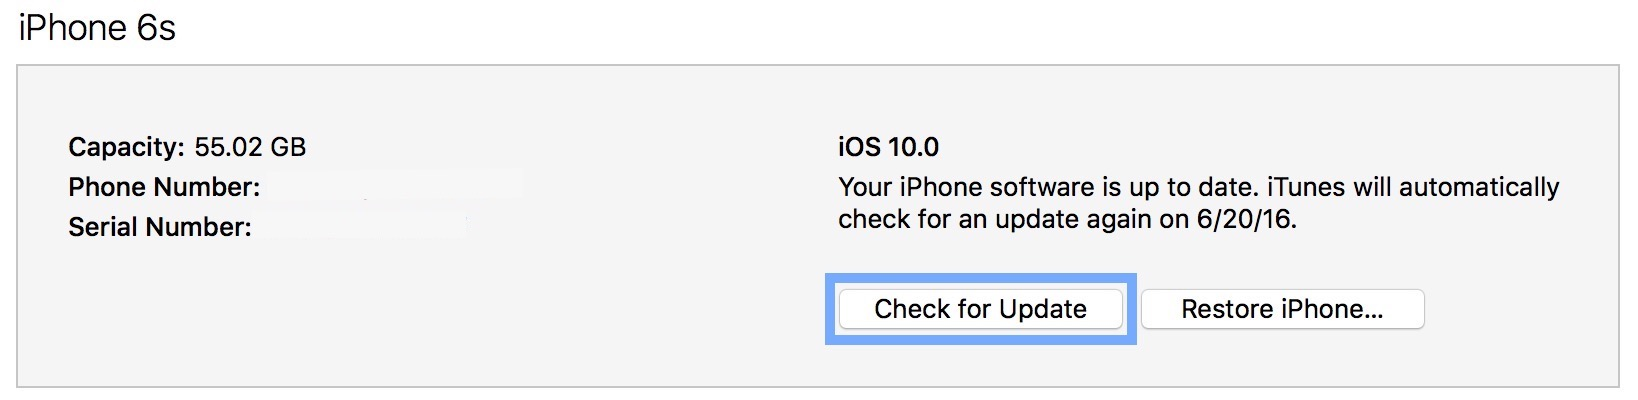 iOS 10 iTunes Check for Update Downgrade